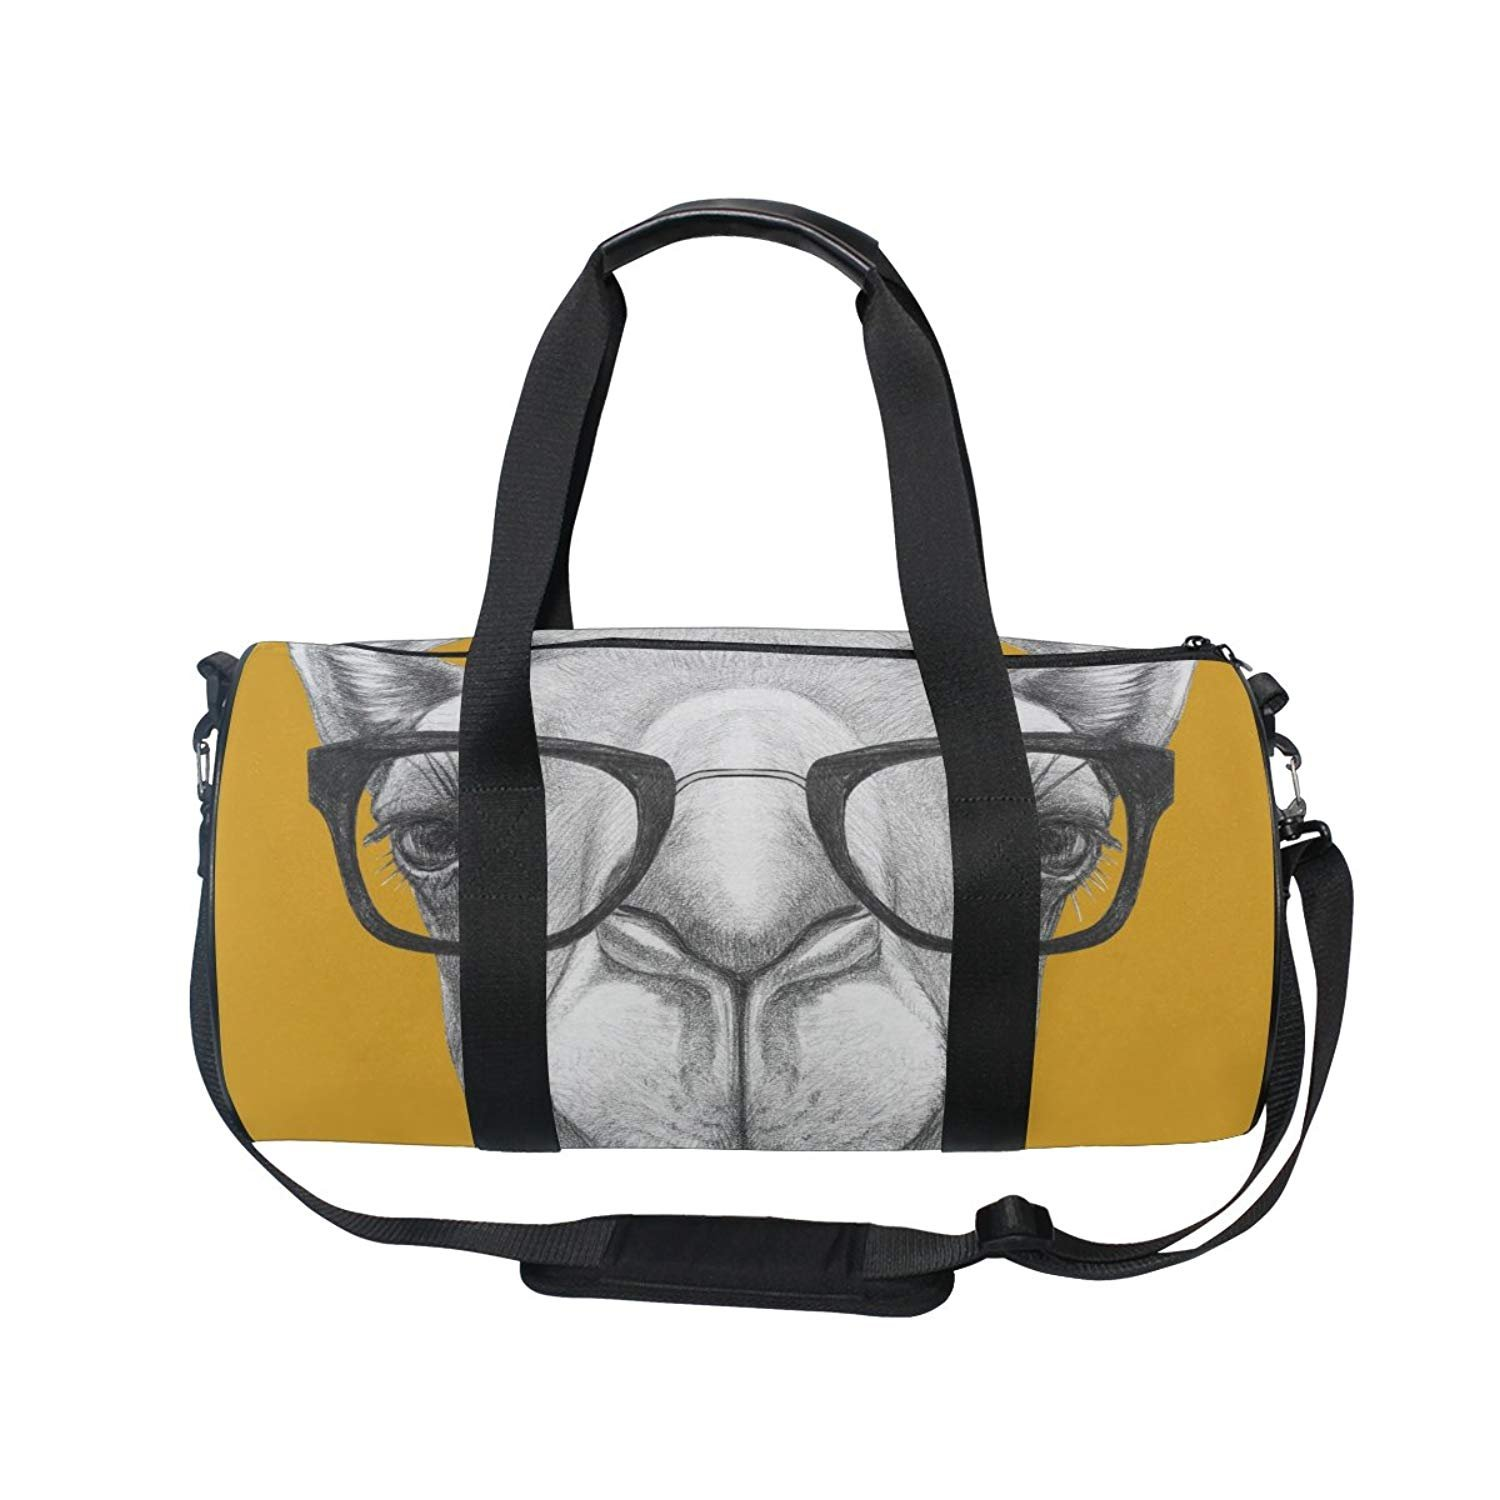 Sports Bag Funny Camels In Sunglasses Mens Duffle Luggage Travel Bags Kid Lightweight Gym bag